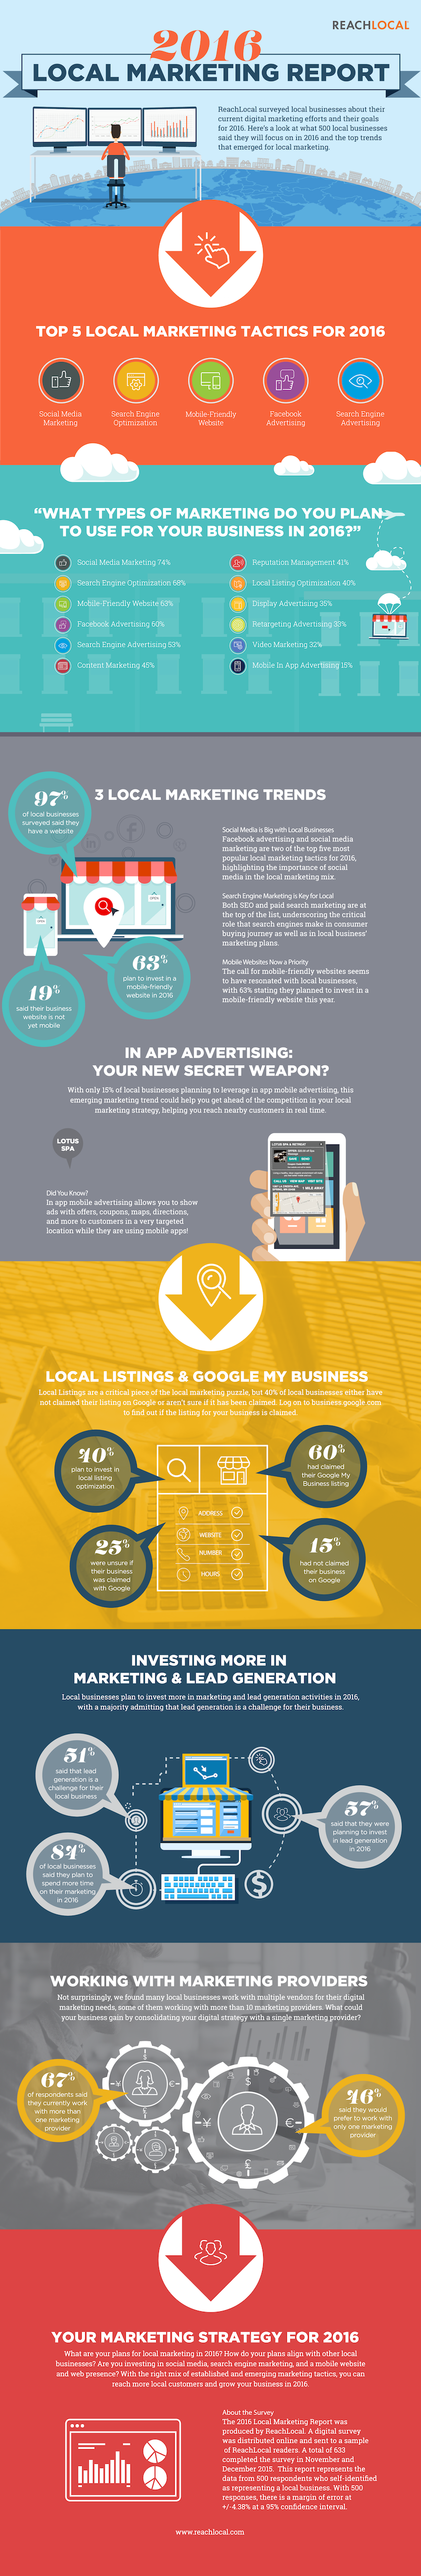 2016 Local Marketing Report [Infographic]